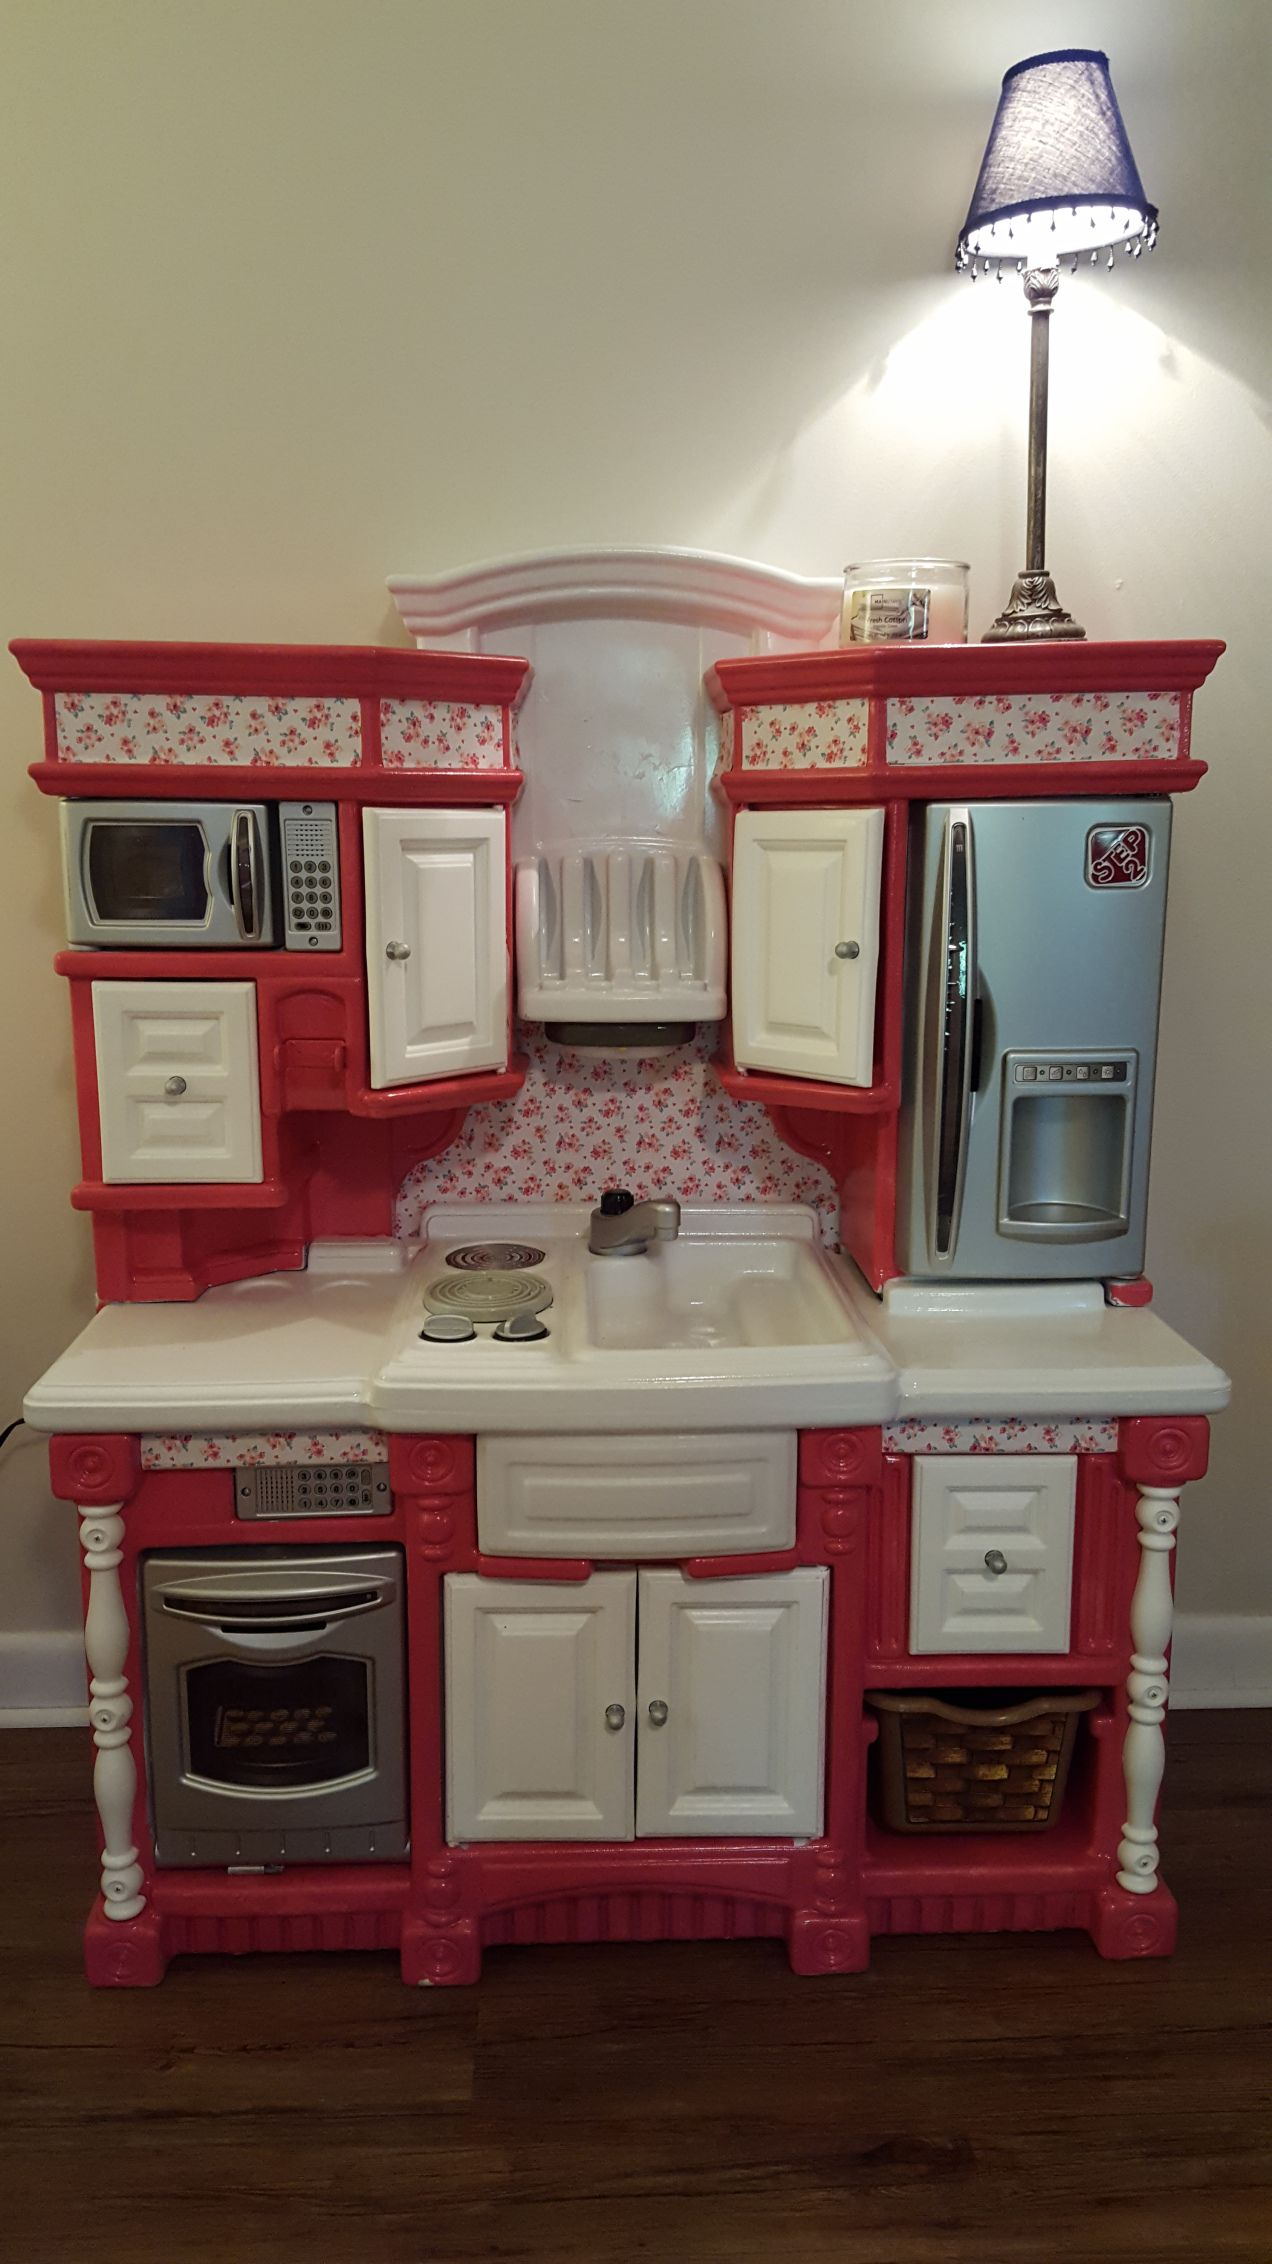 diy play kitchen remodel plastic step 2 kids play kitchen diy rh pinterest com